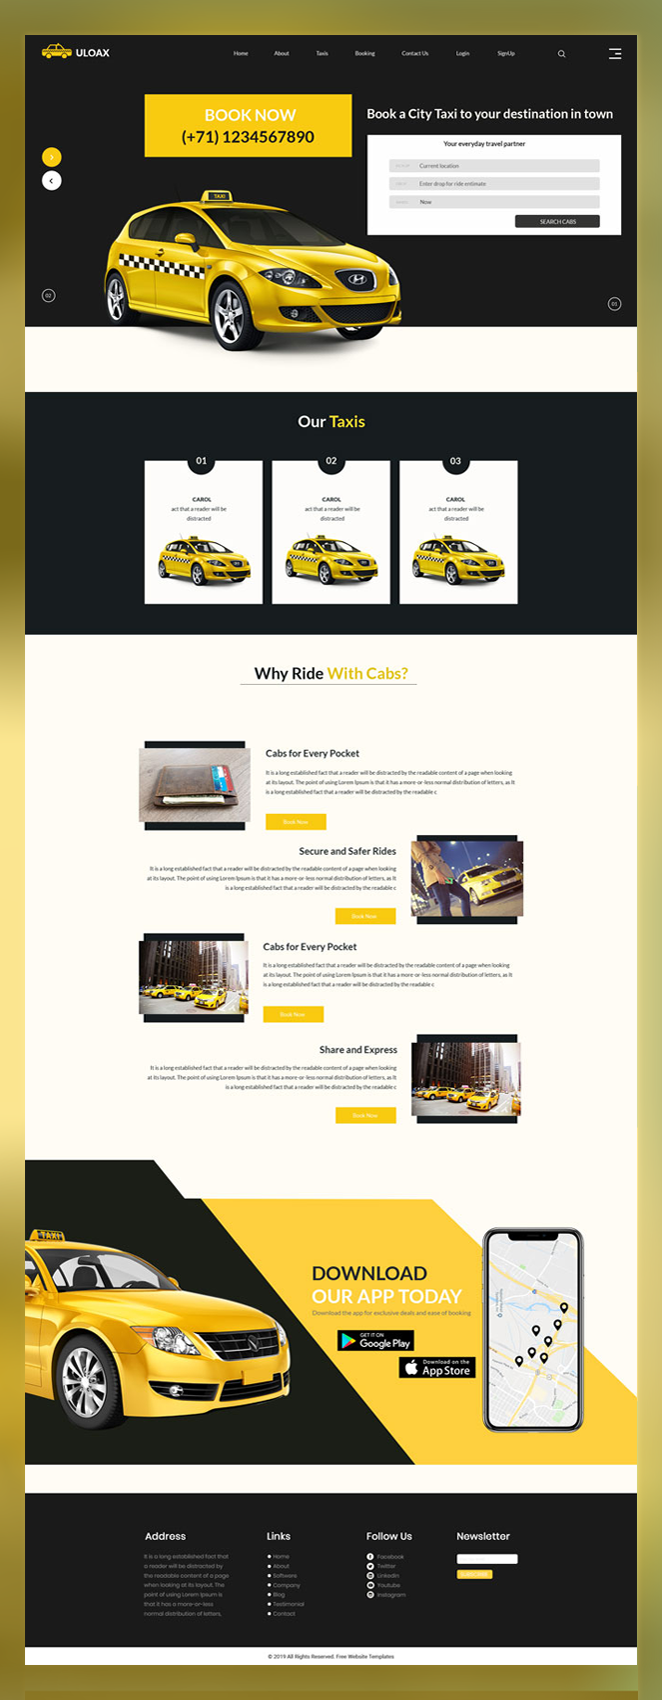 ULOAX taxi booking psd template